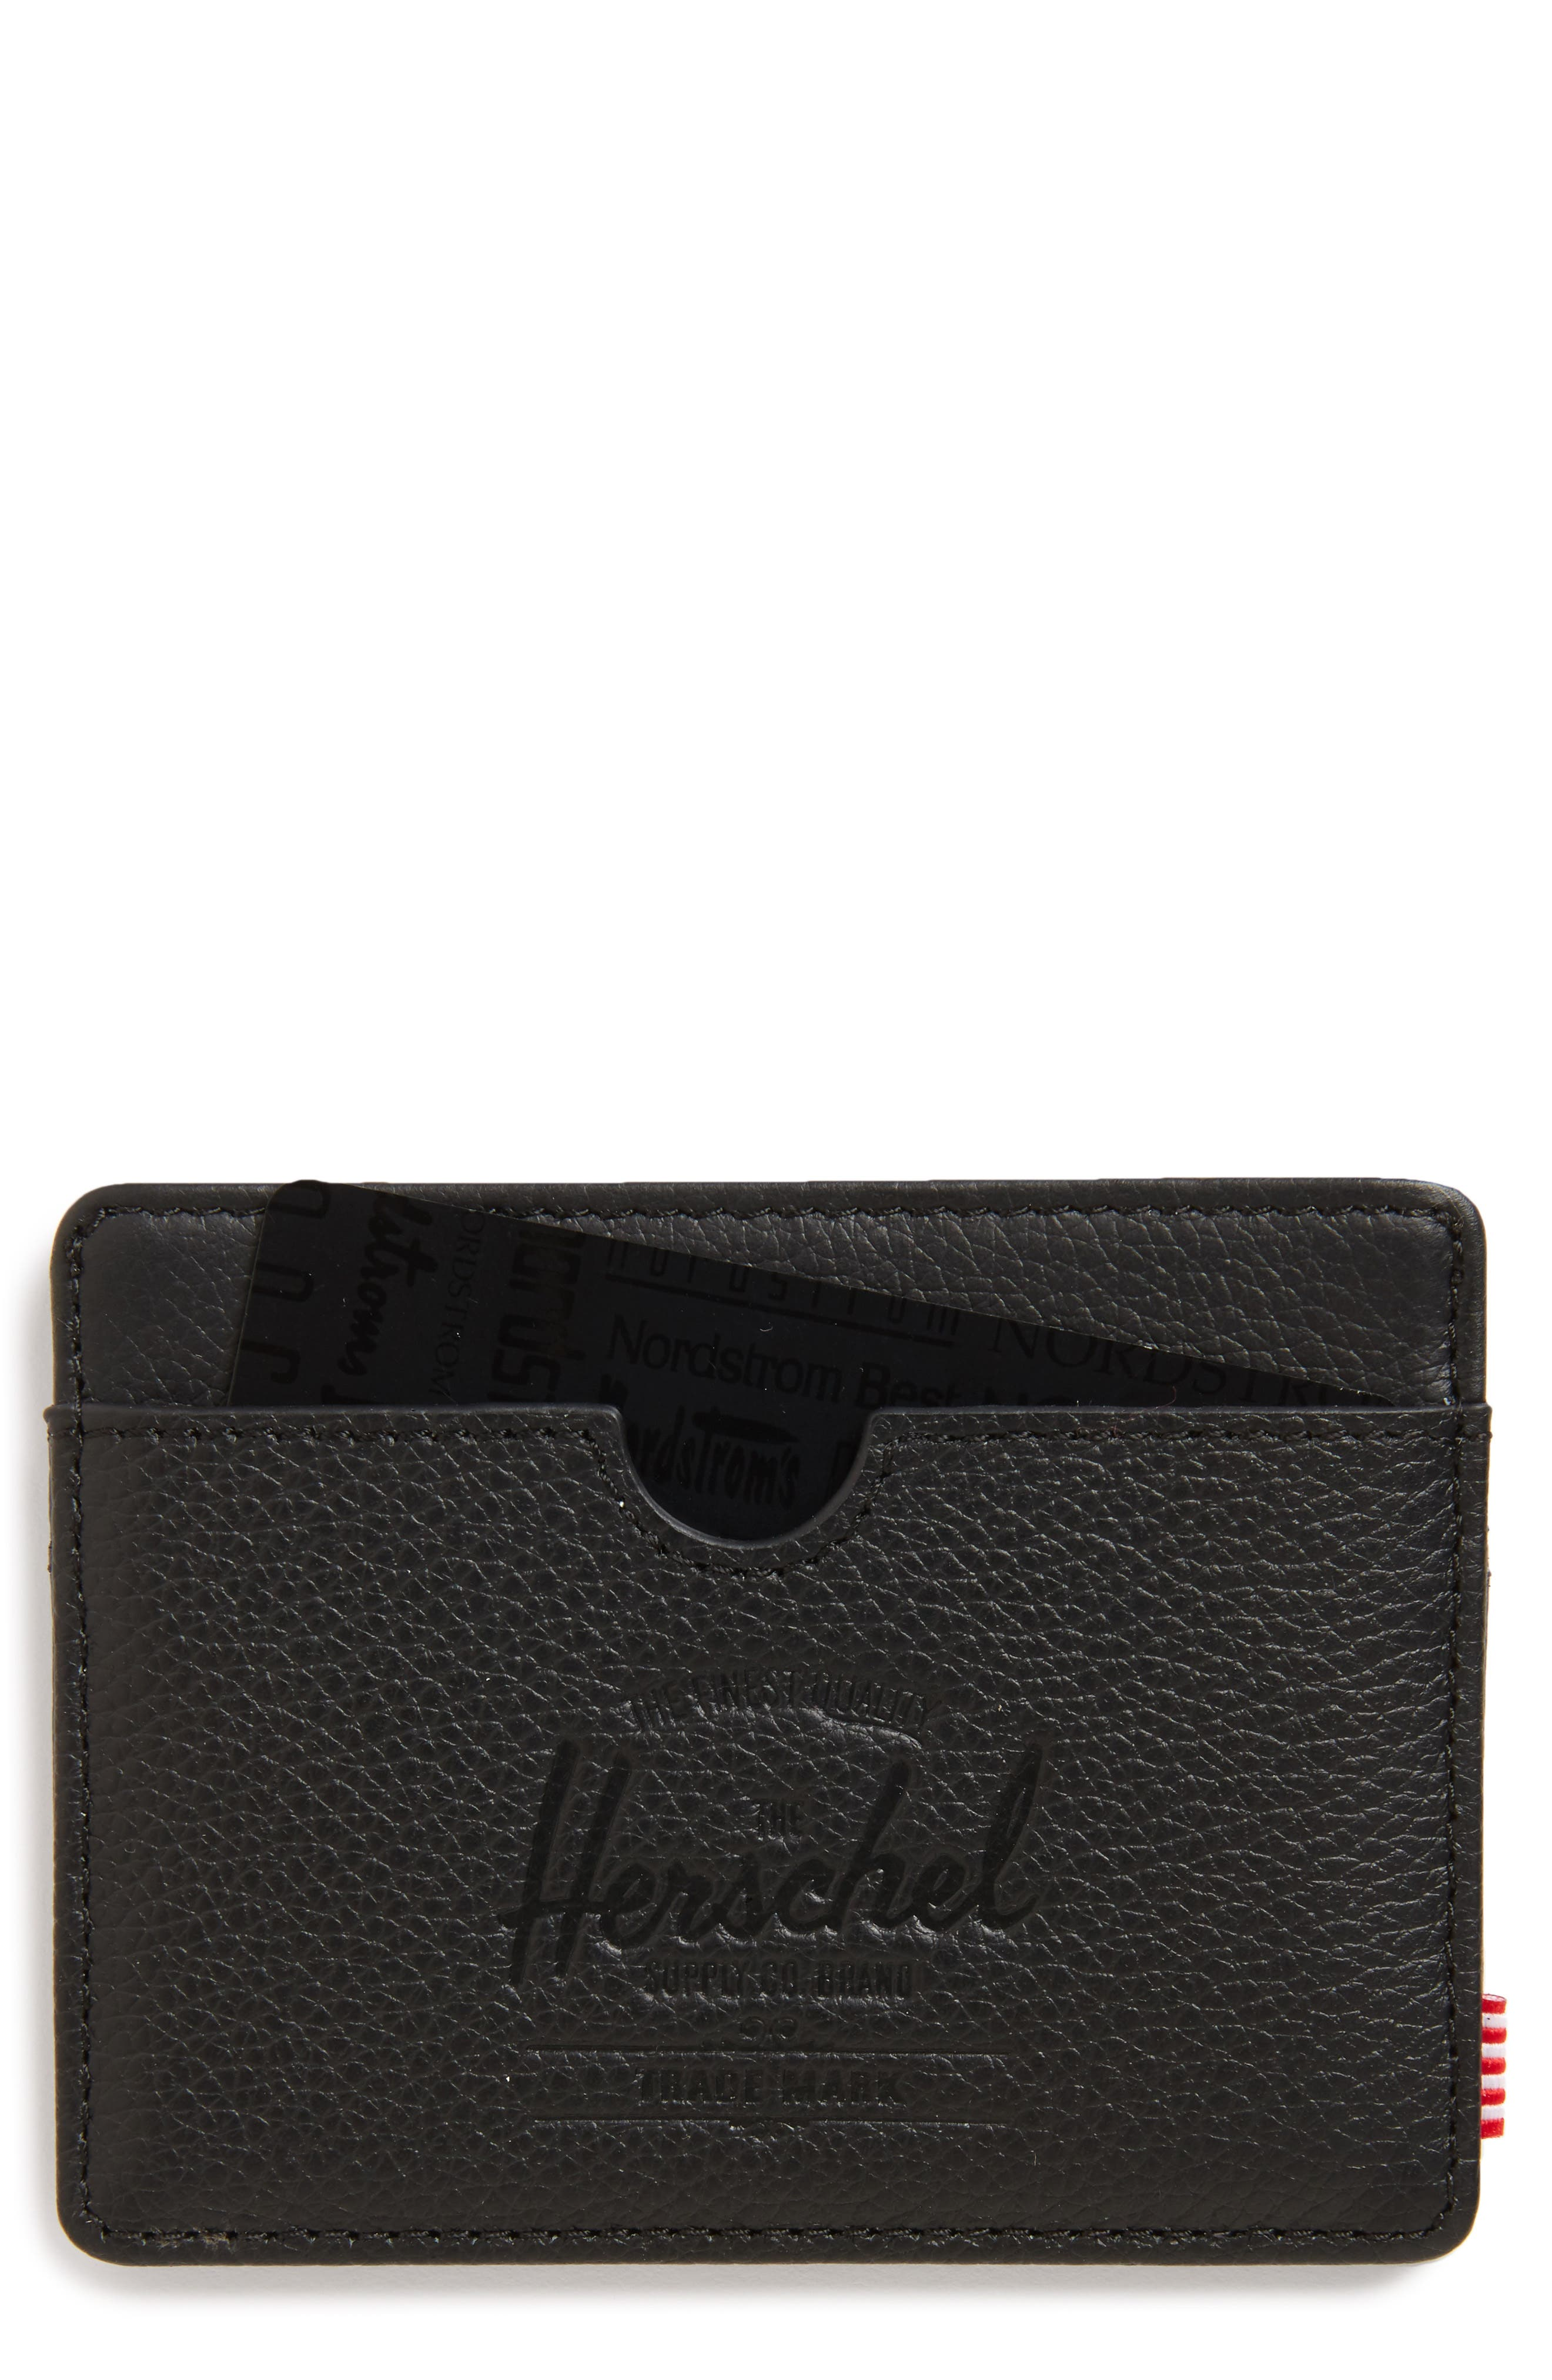 HERSCHEL SUPPLY CO. Charlie Leather Card Case